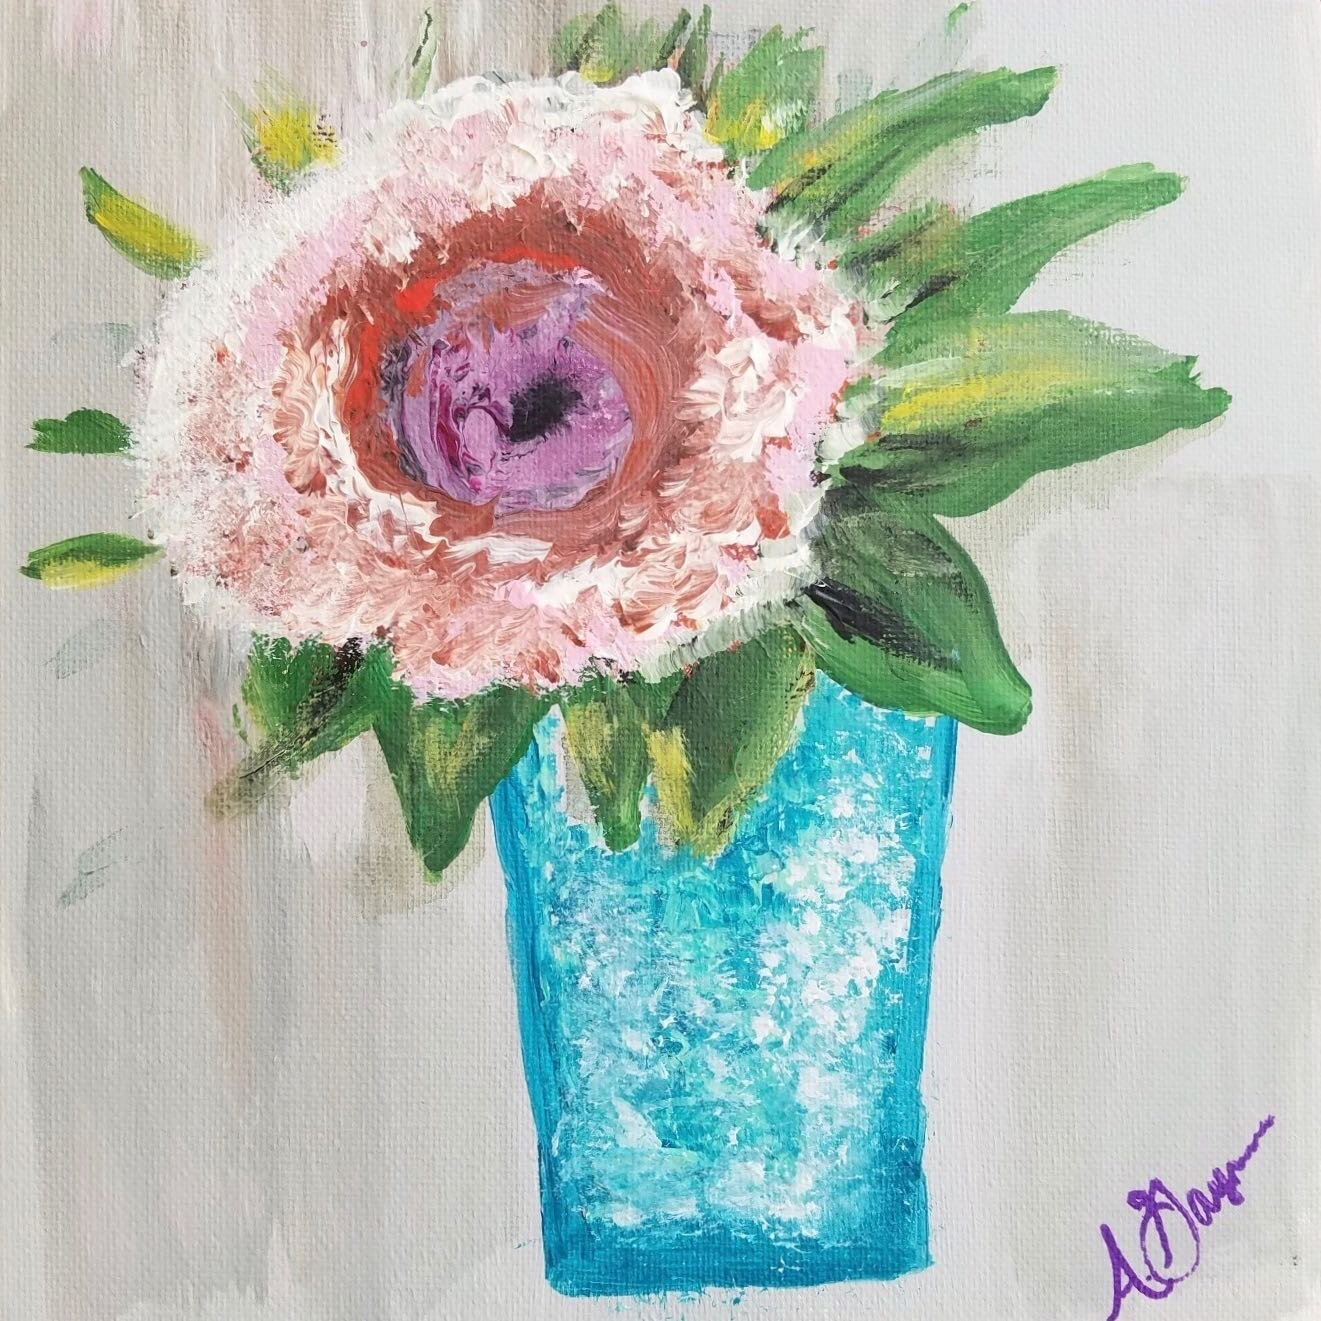 """""""SIMPLICITY"""" FRAMED ACRYLIC PAINTING   """"Simplicity"""" is sure to capture your eye. Take home this 8x10 framed acrylic on canvas painting.  DONOR: Ashley Gaymon VALUE: $40"""